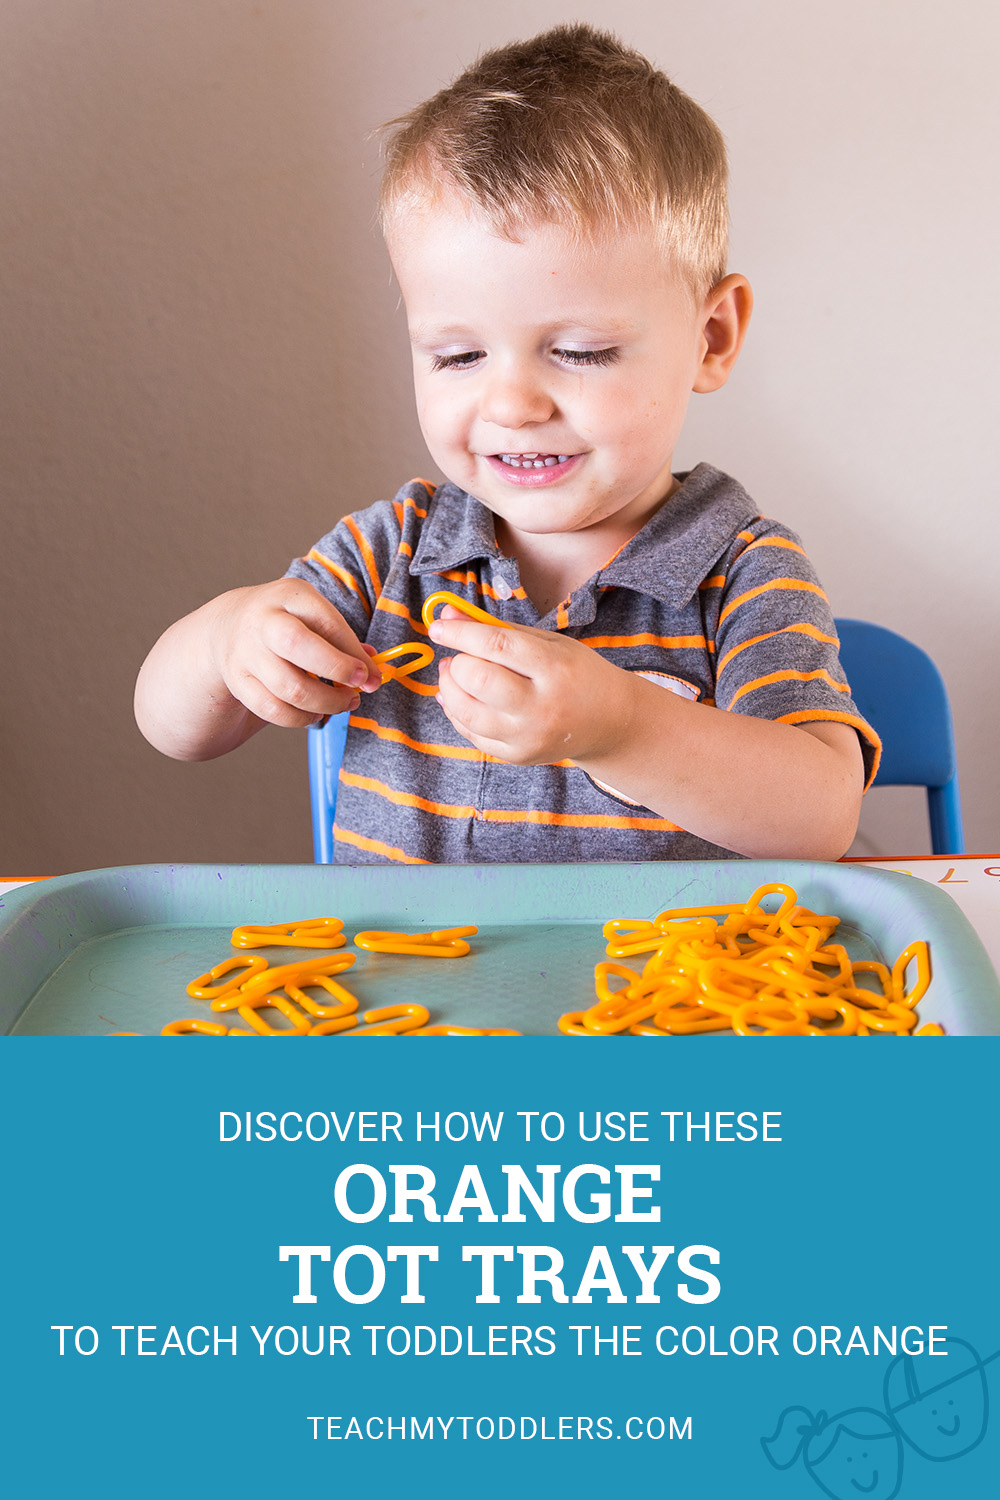 Discover how to use these orange tot trays to teach your toddlers the color orange